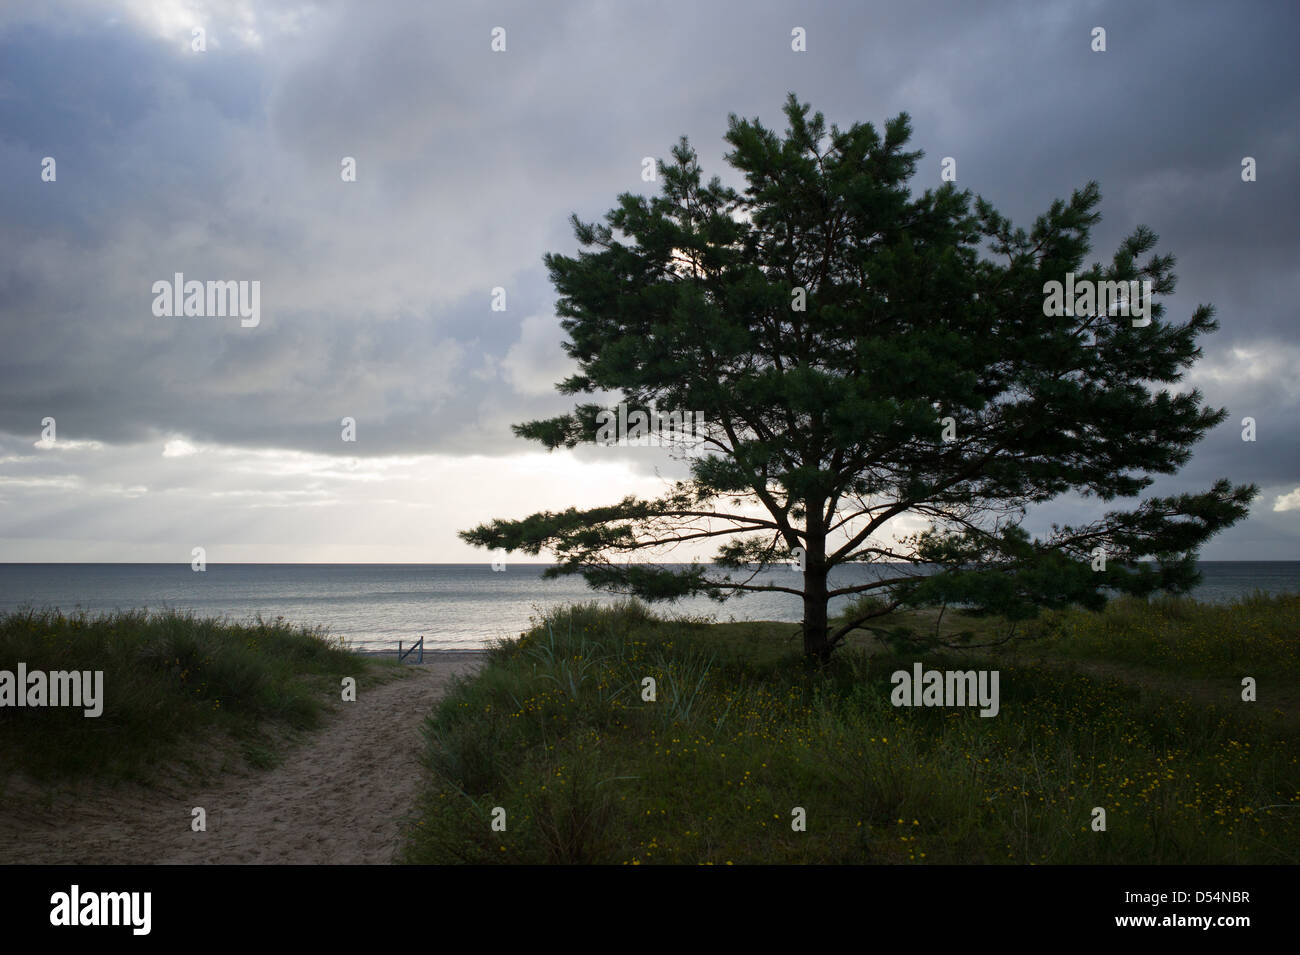 Prora, Germany, cloud cover over the Baltic Sea - Stock Image